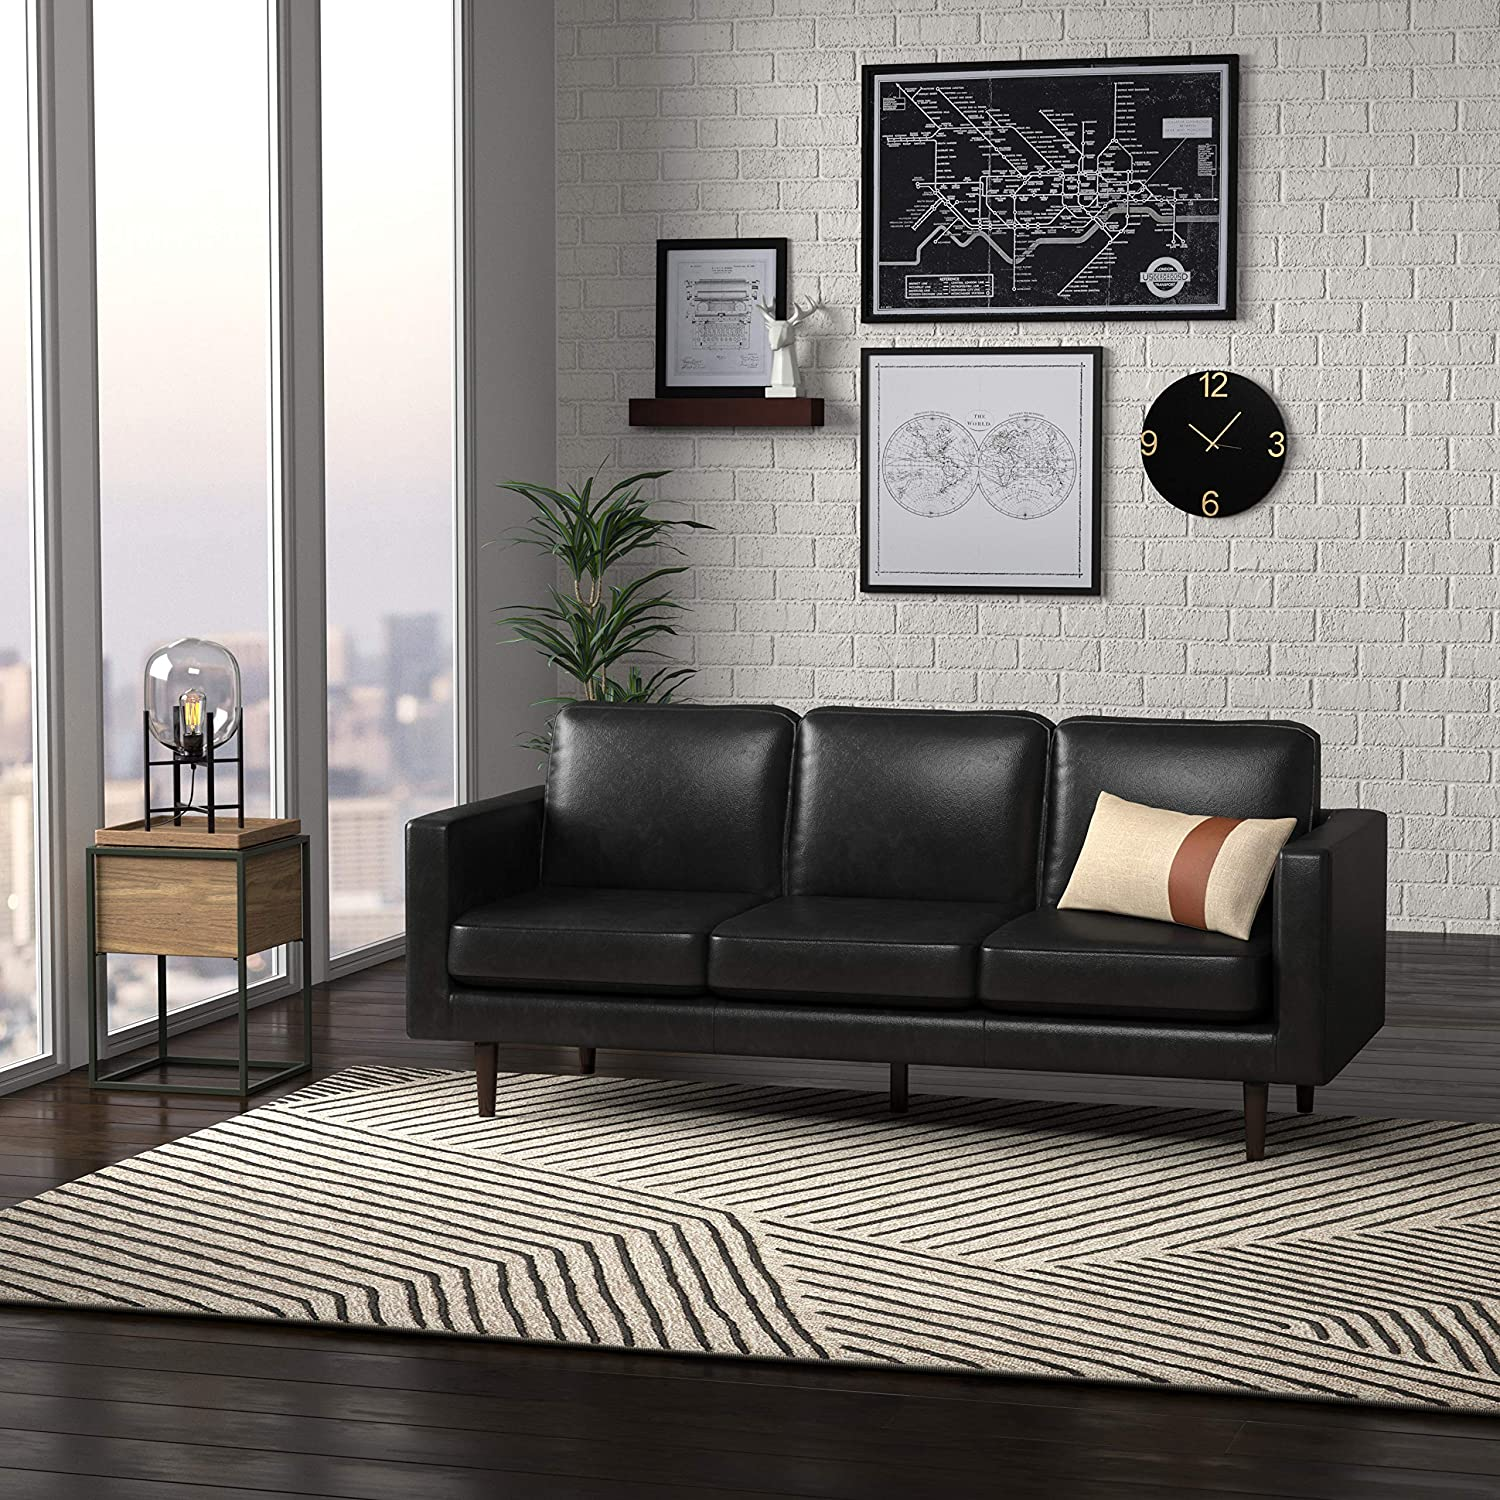 Rivet Revolve Modern Leather Sofa Couch Review by www.snoremagazine.com